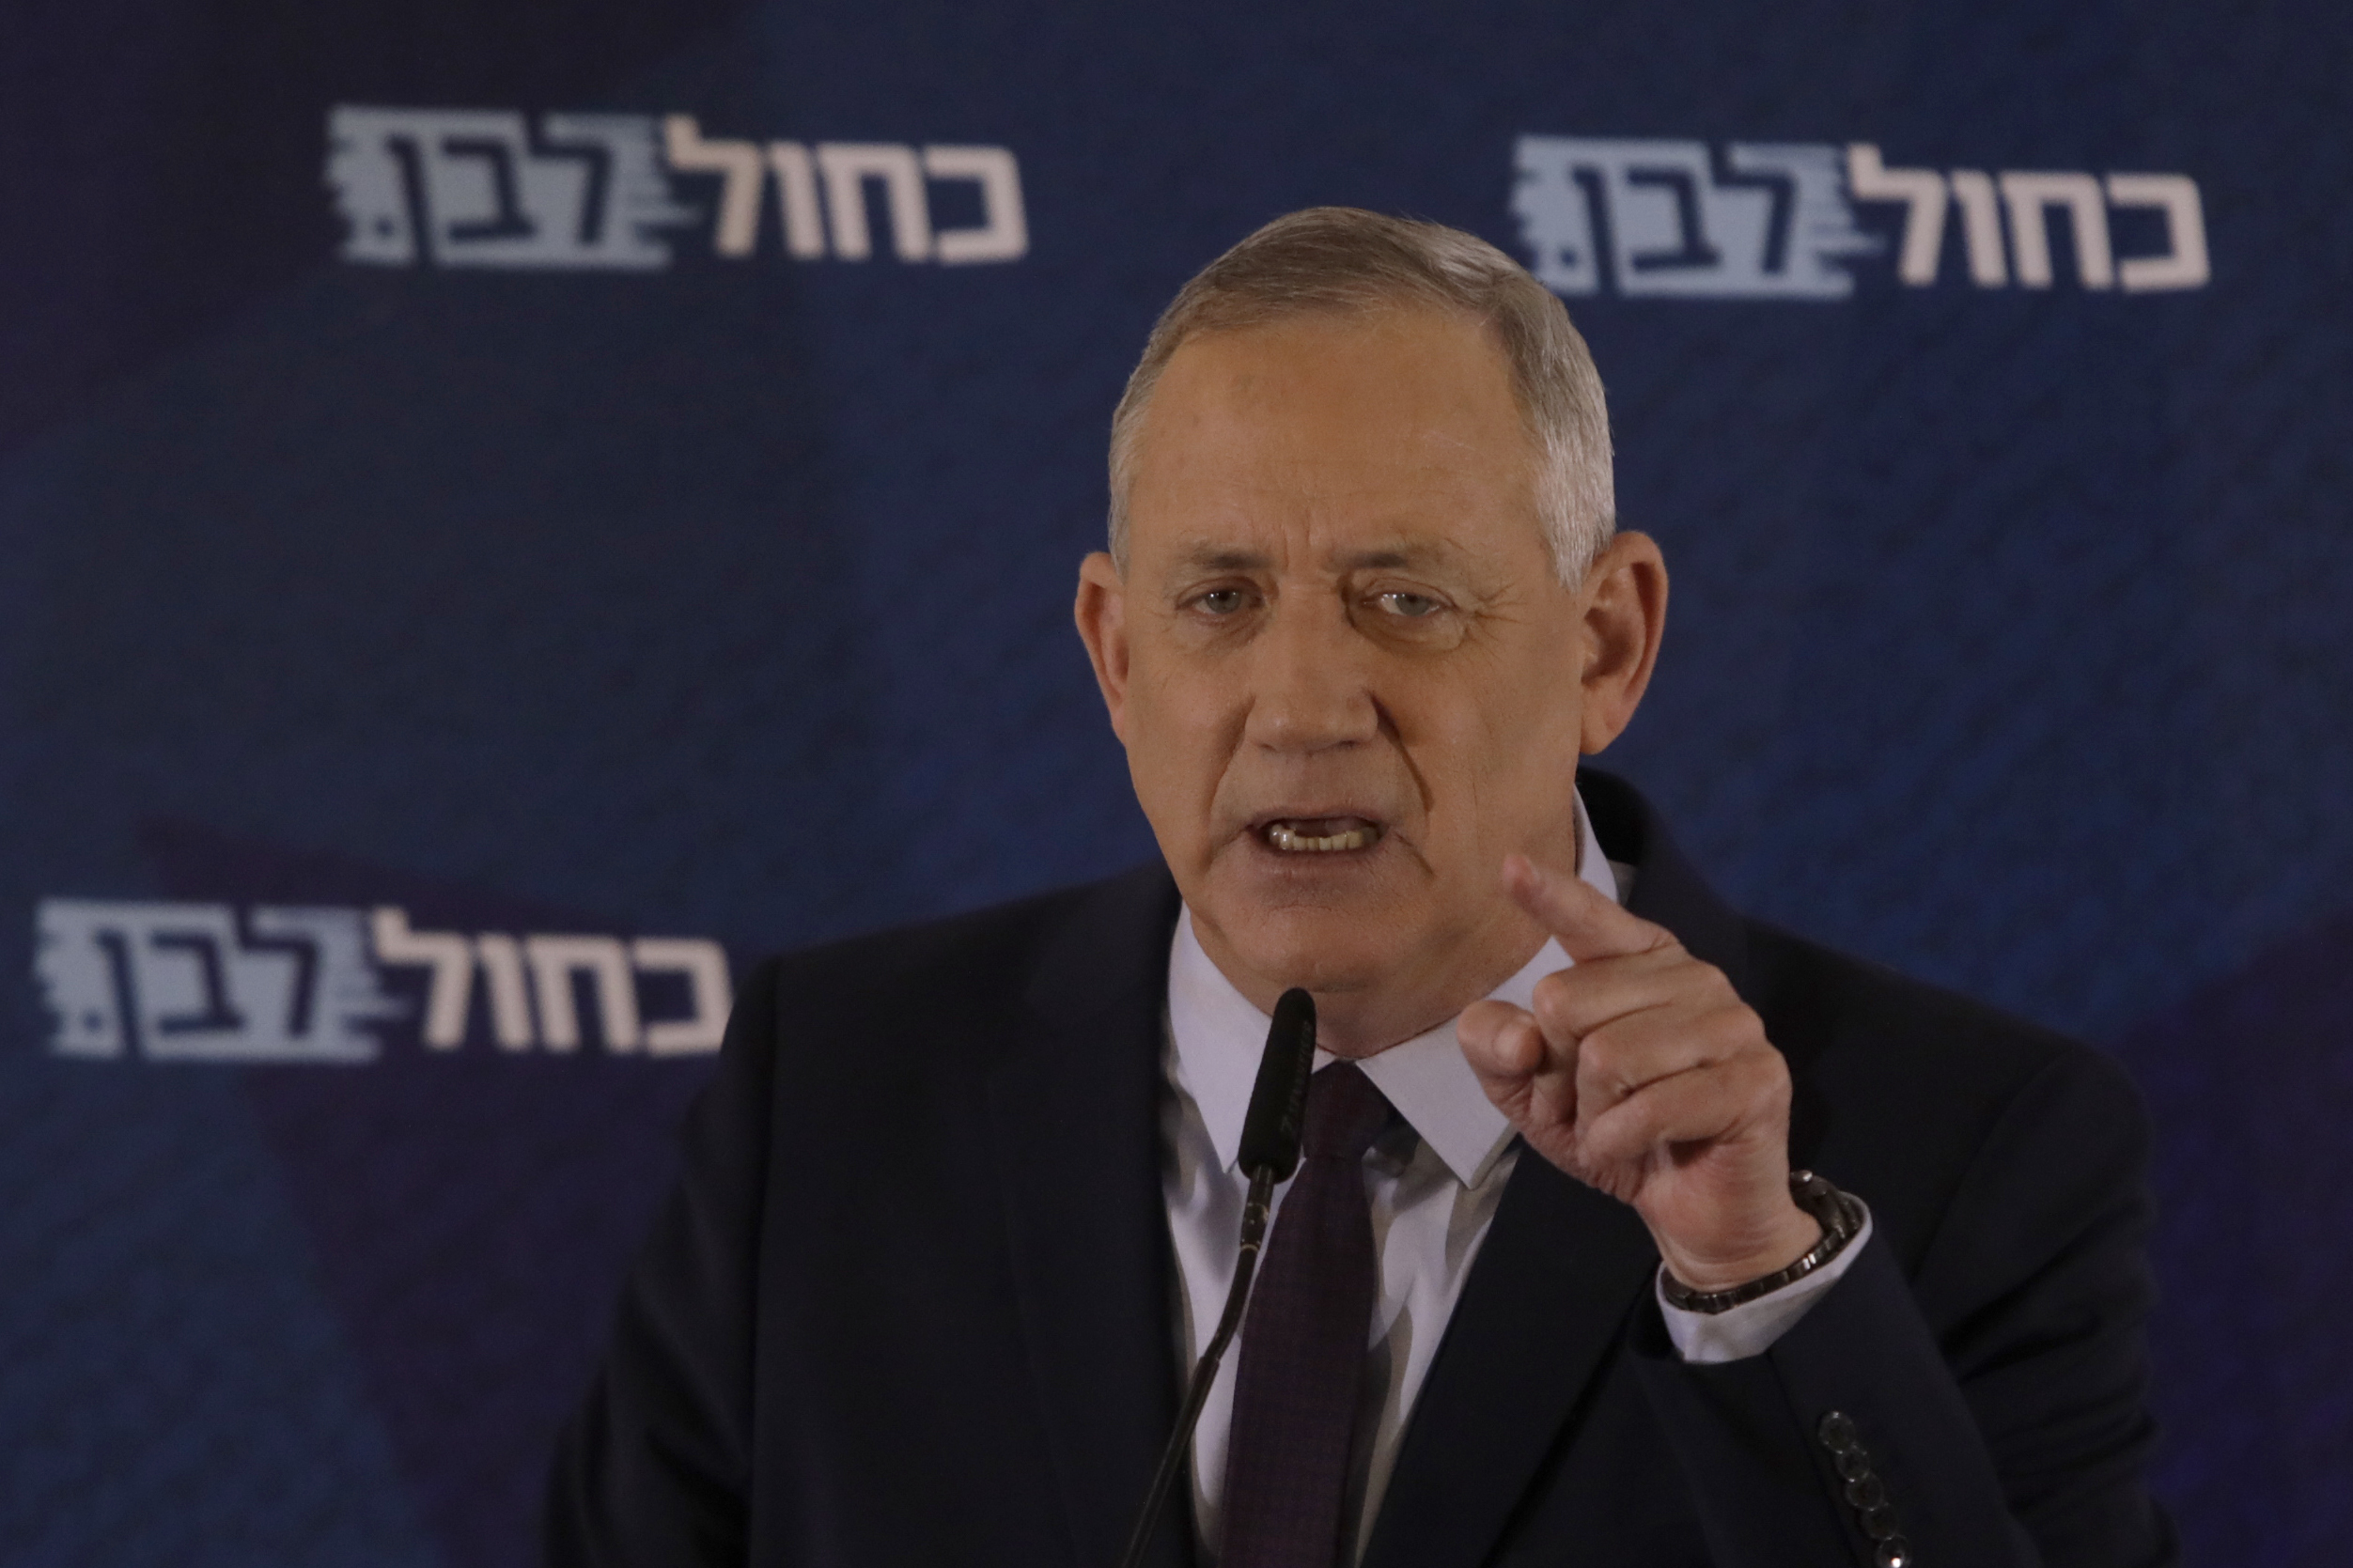 Israel election challenger gets extra security after threats